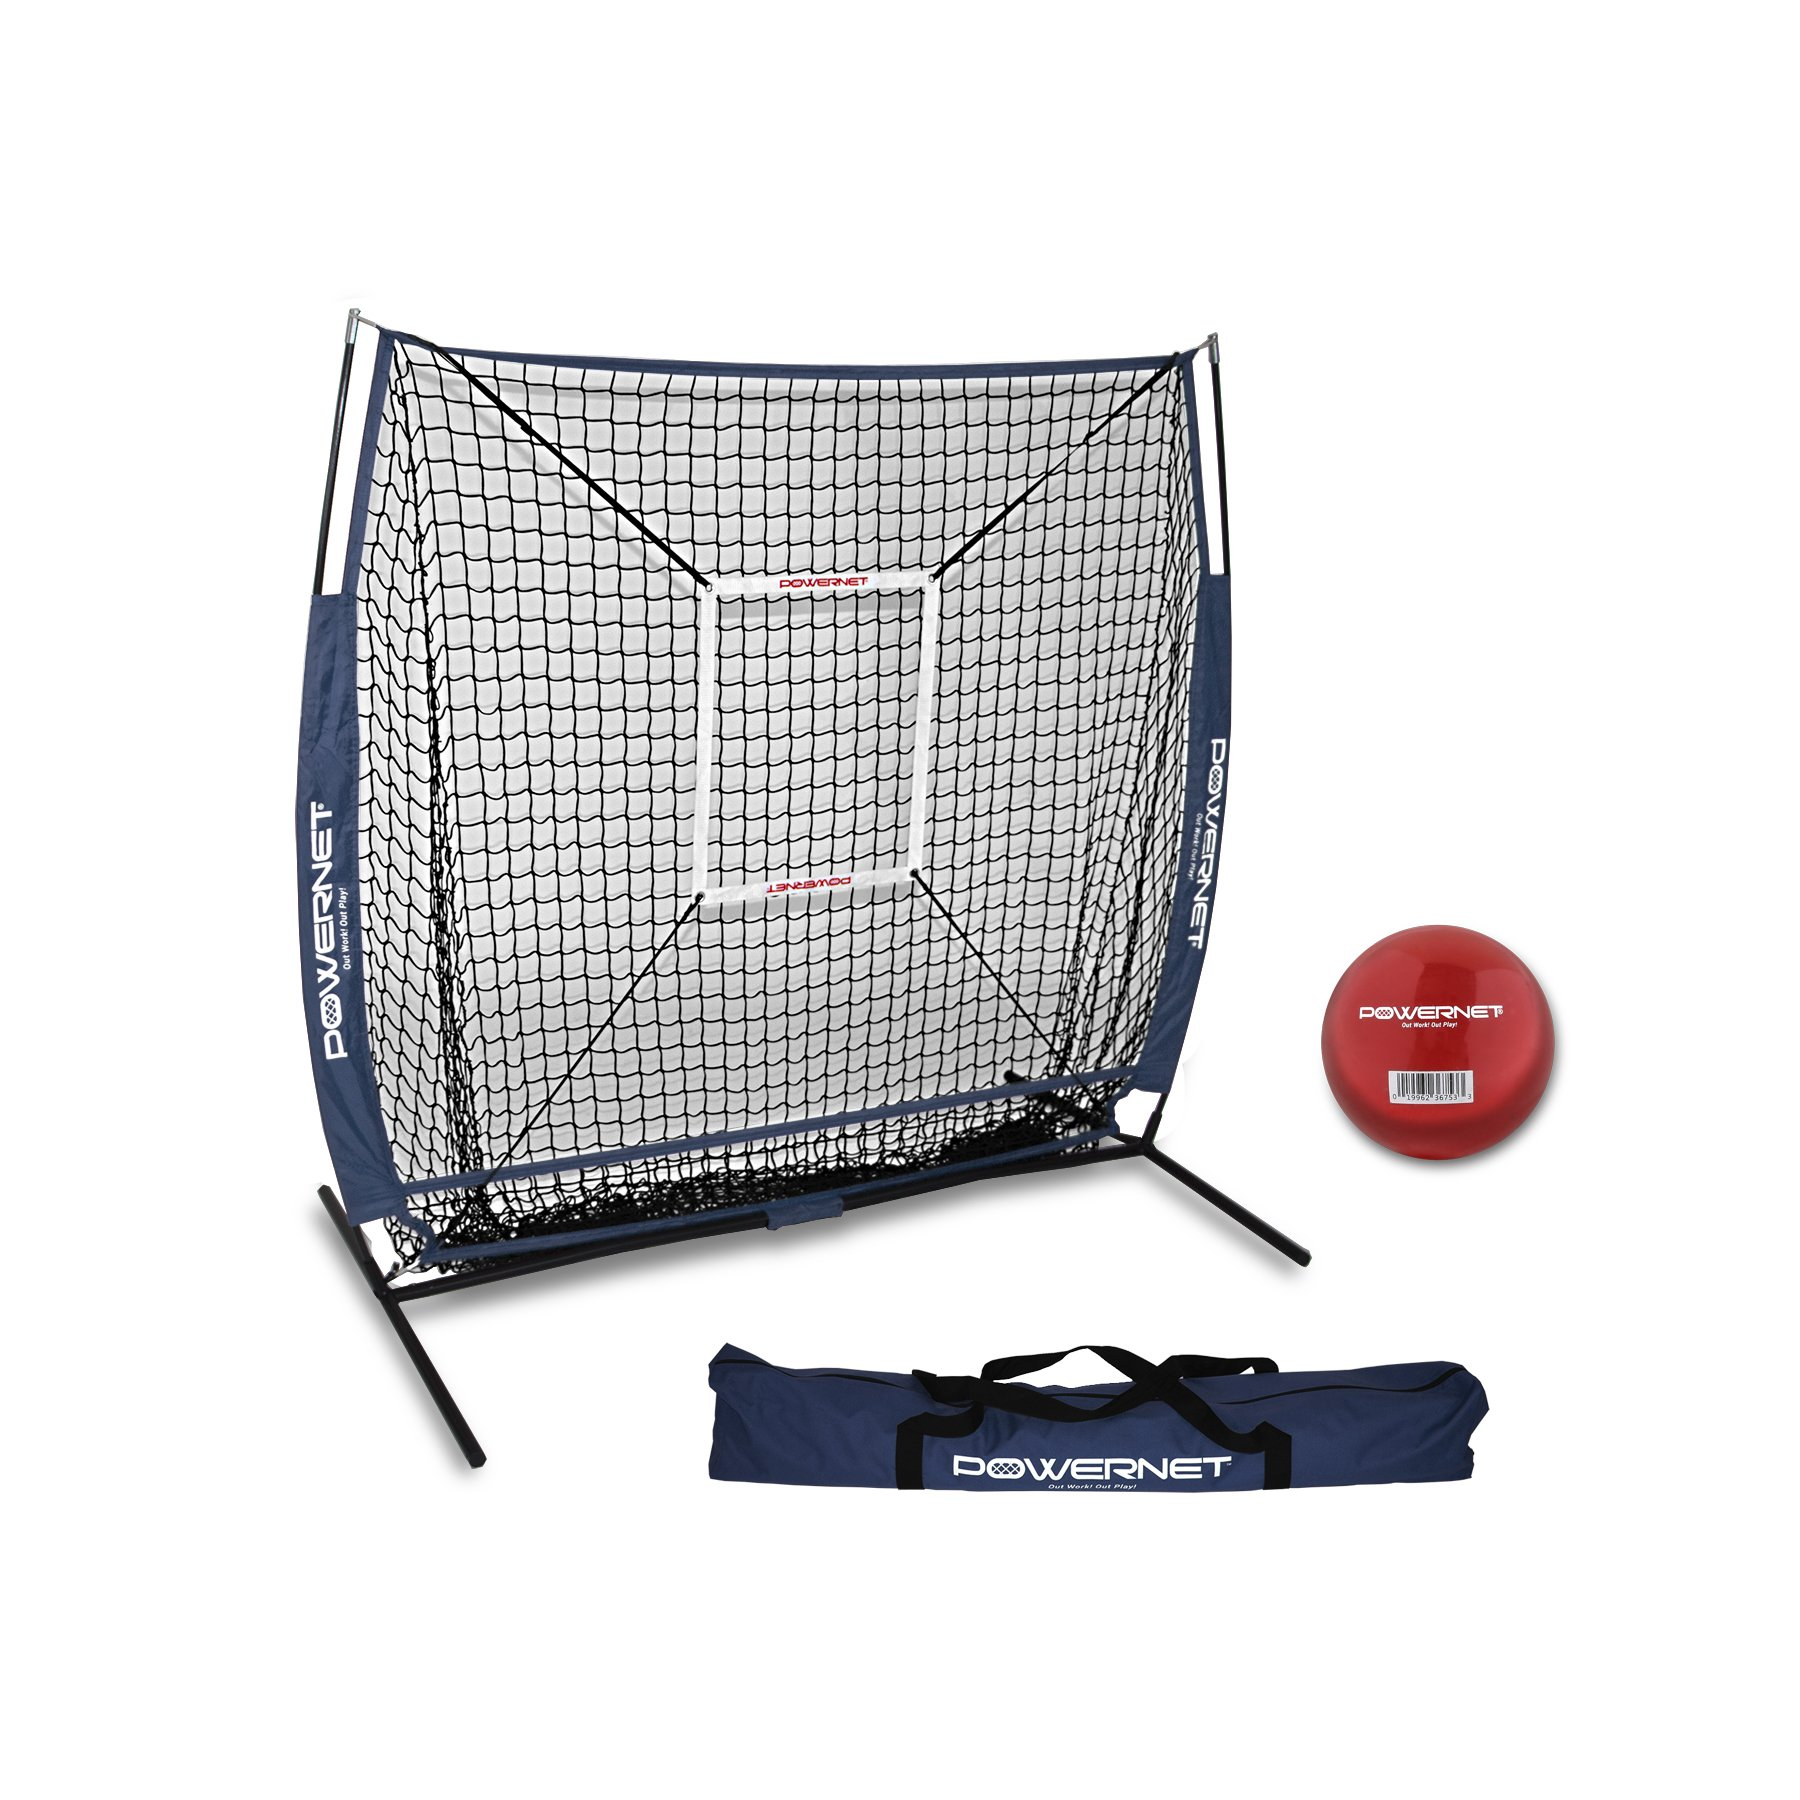 PowerNet 5x5 Practice Net + Strike Zone + Weighted Training Ball Bundle (Navy) | Baseball Softball Coaching Aid | Compact Lightweight Ultra Portable | Team Color | Batting Screen by PowerNet